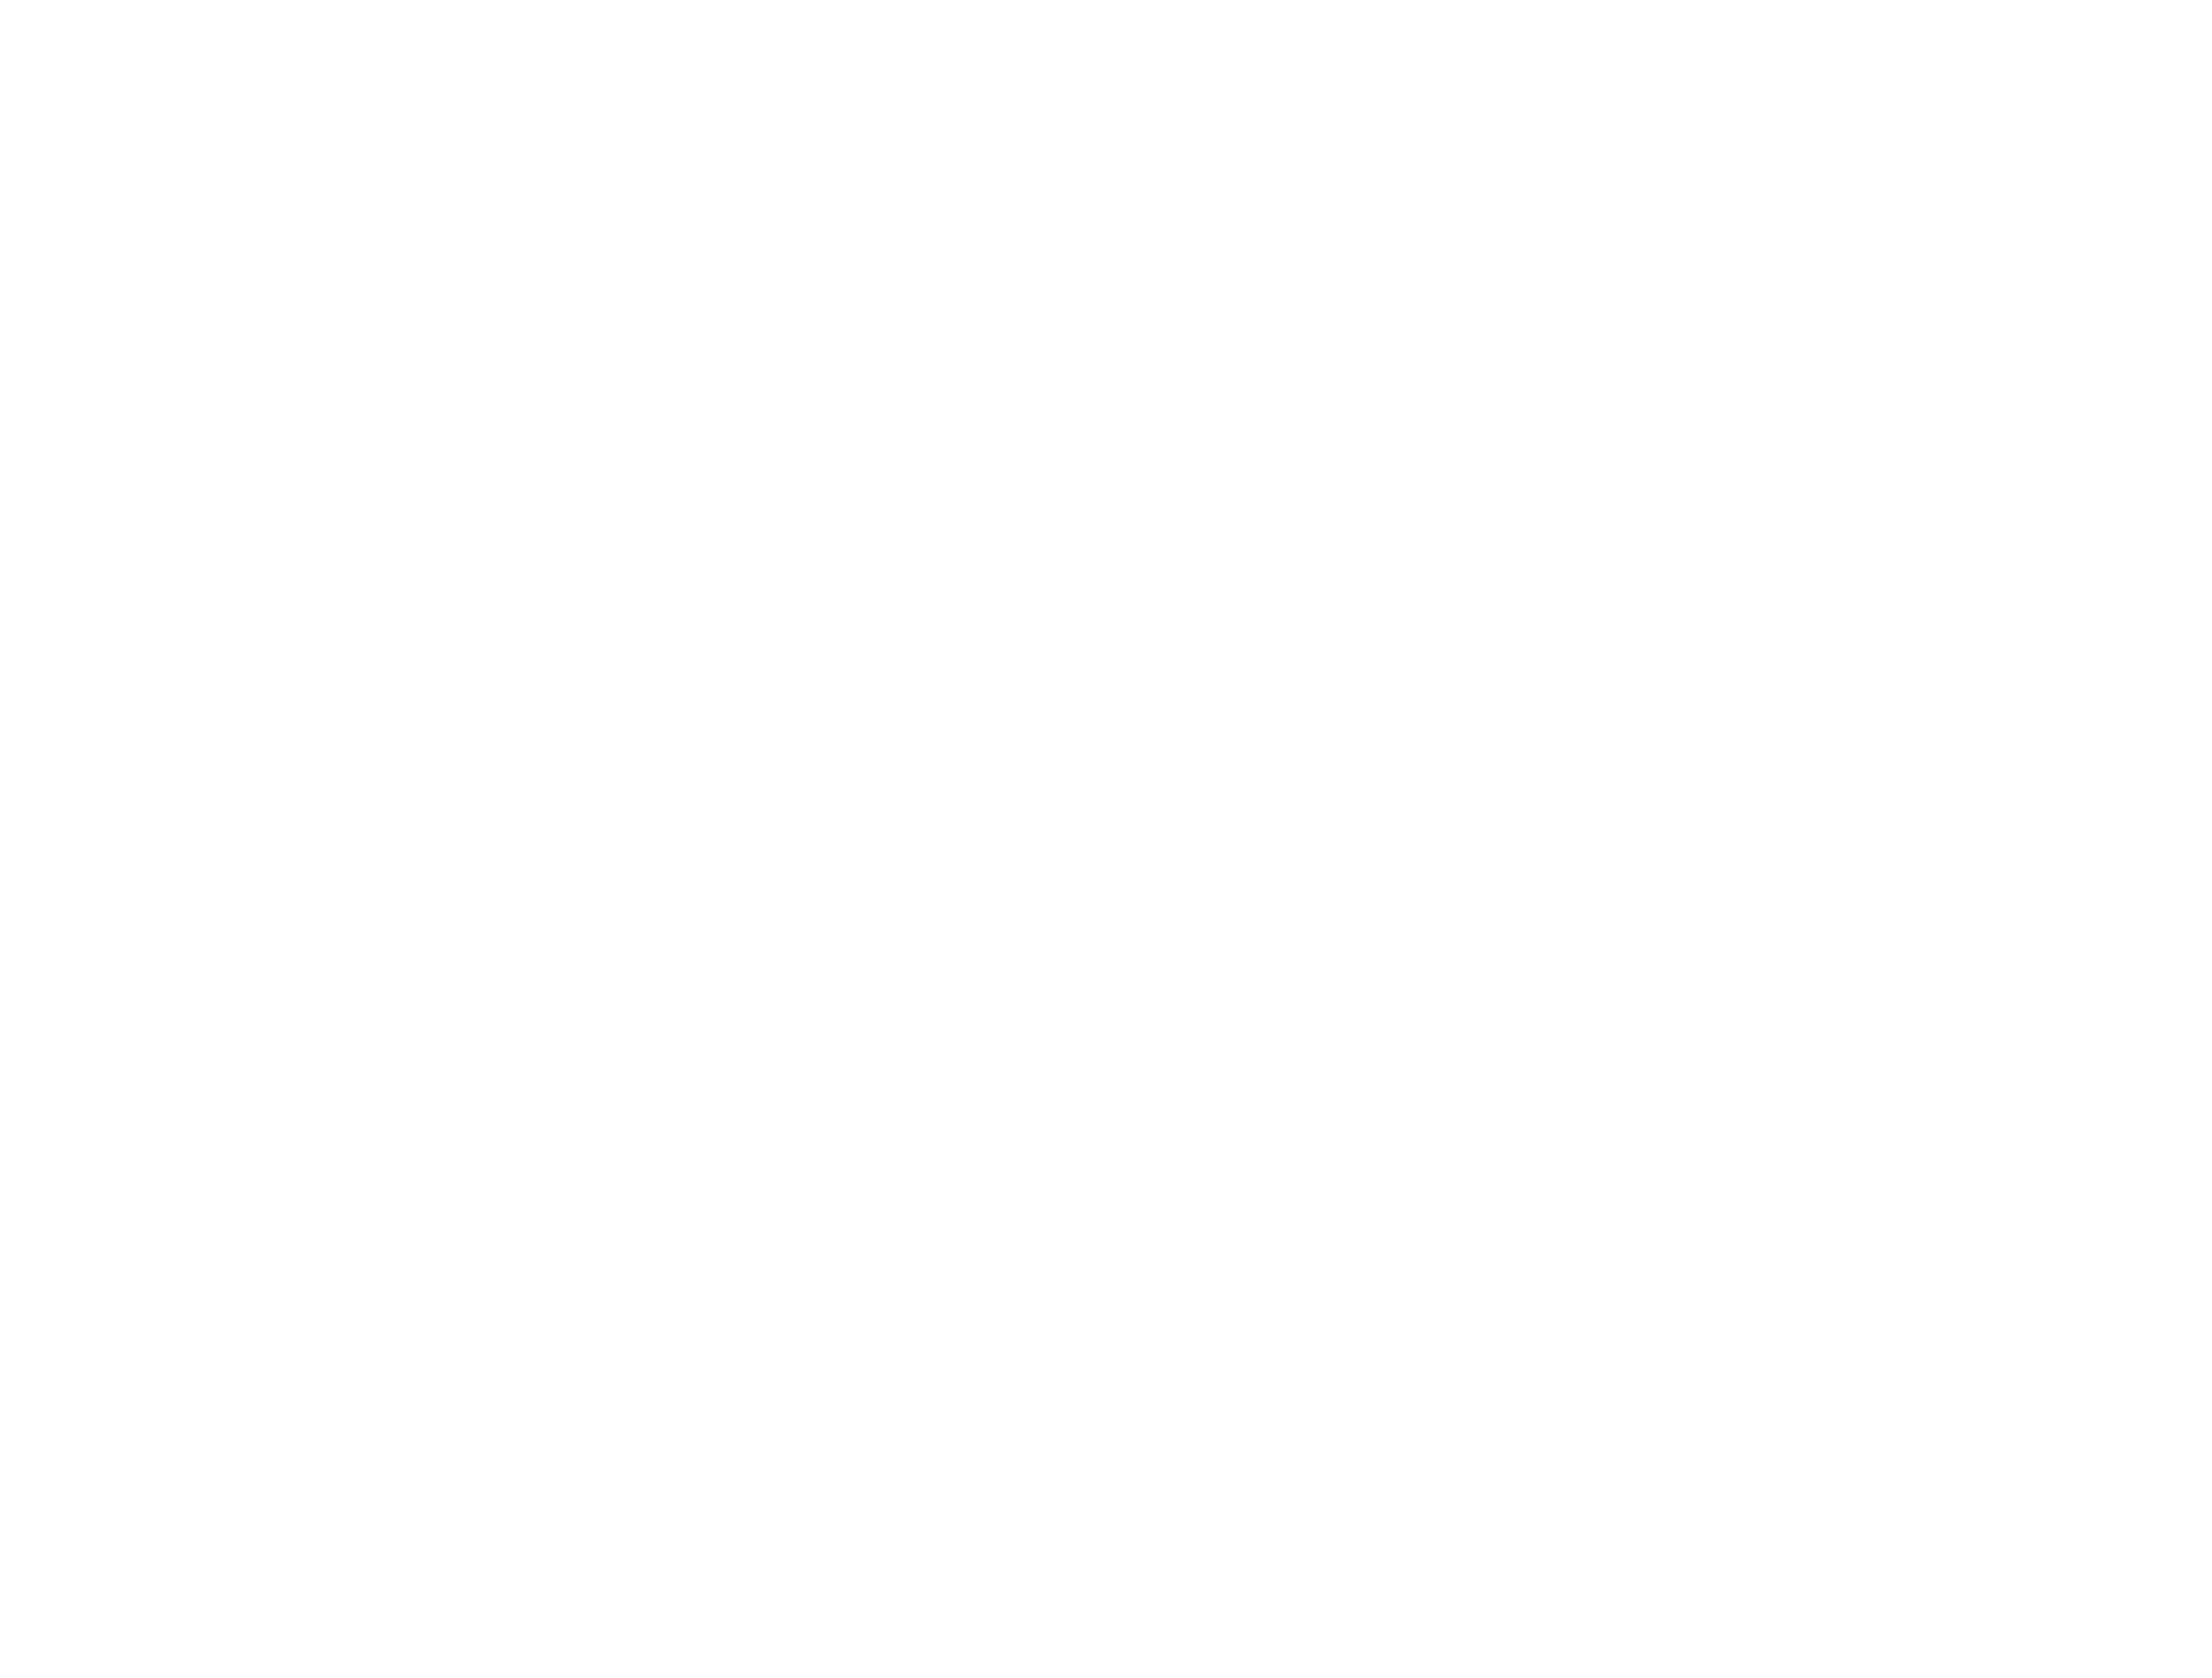 Industree Studio